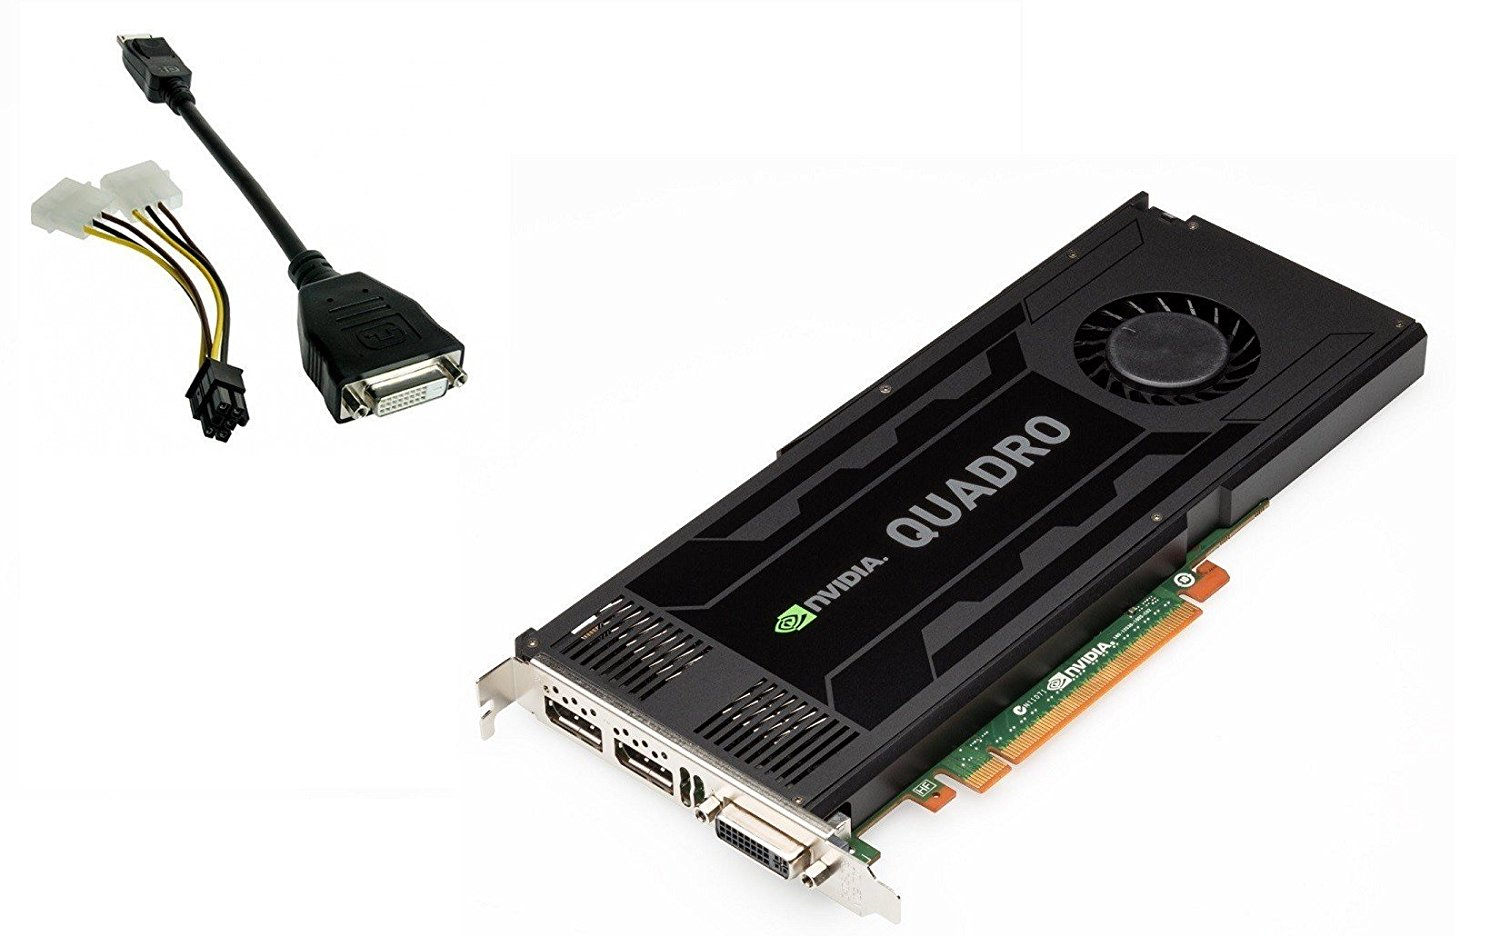 Class: Audio // Video // Output Devices//Video Graphic Cards 2 Gb Gddr5 Sdram Nvidia Quadro K2000d Prod By Pny Technologies Pny Technologies Video Card